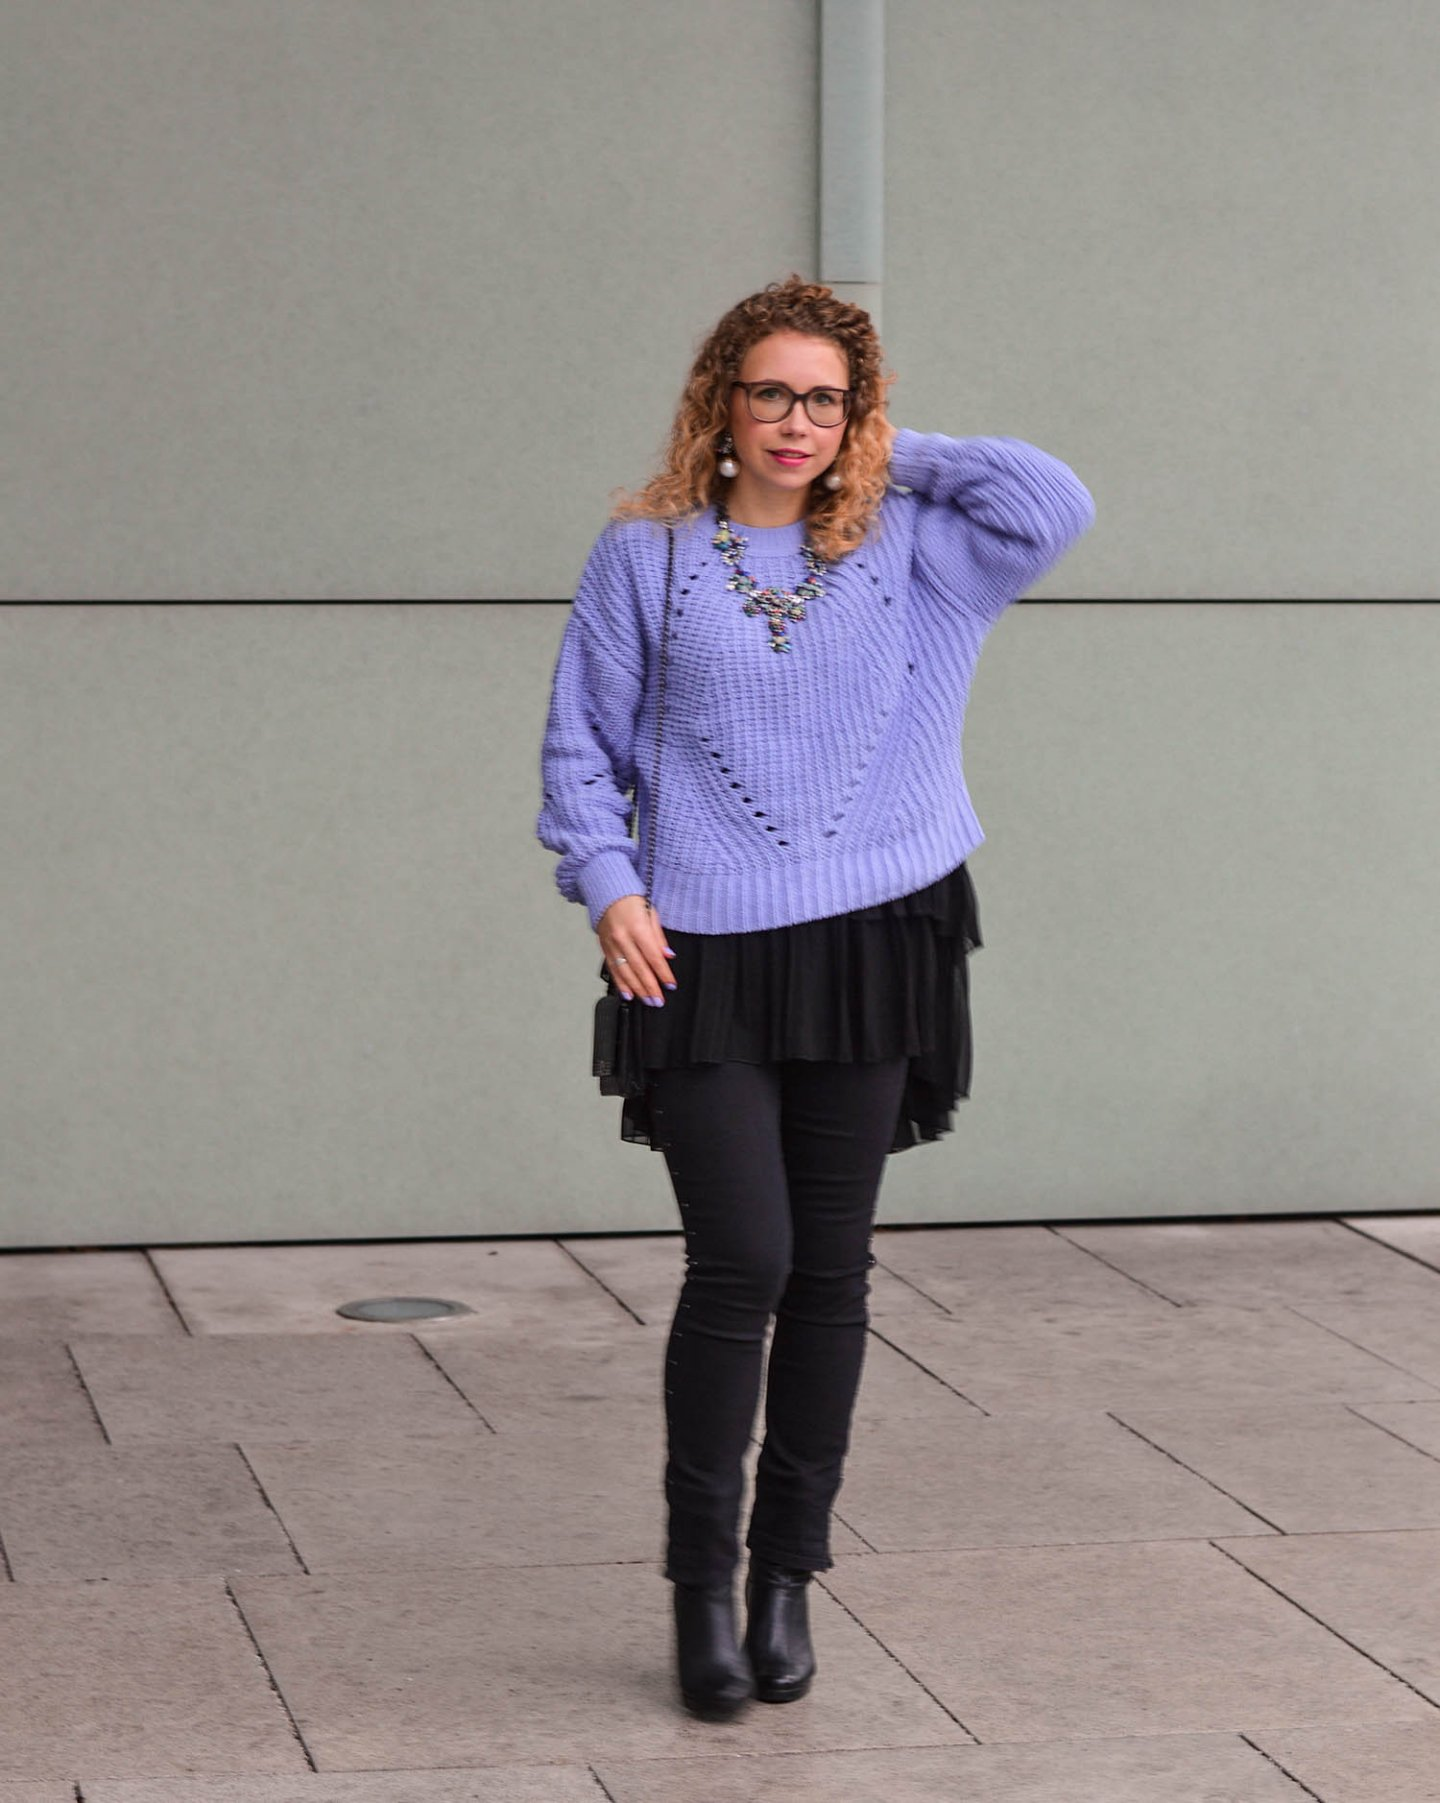 Statement-Schmuck-mit-winterlichem-Lagenlook-Kationette-Fashionblog-Germany-Outfit